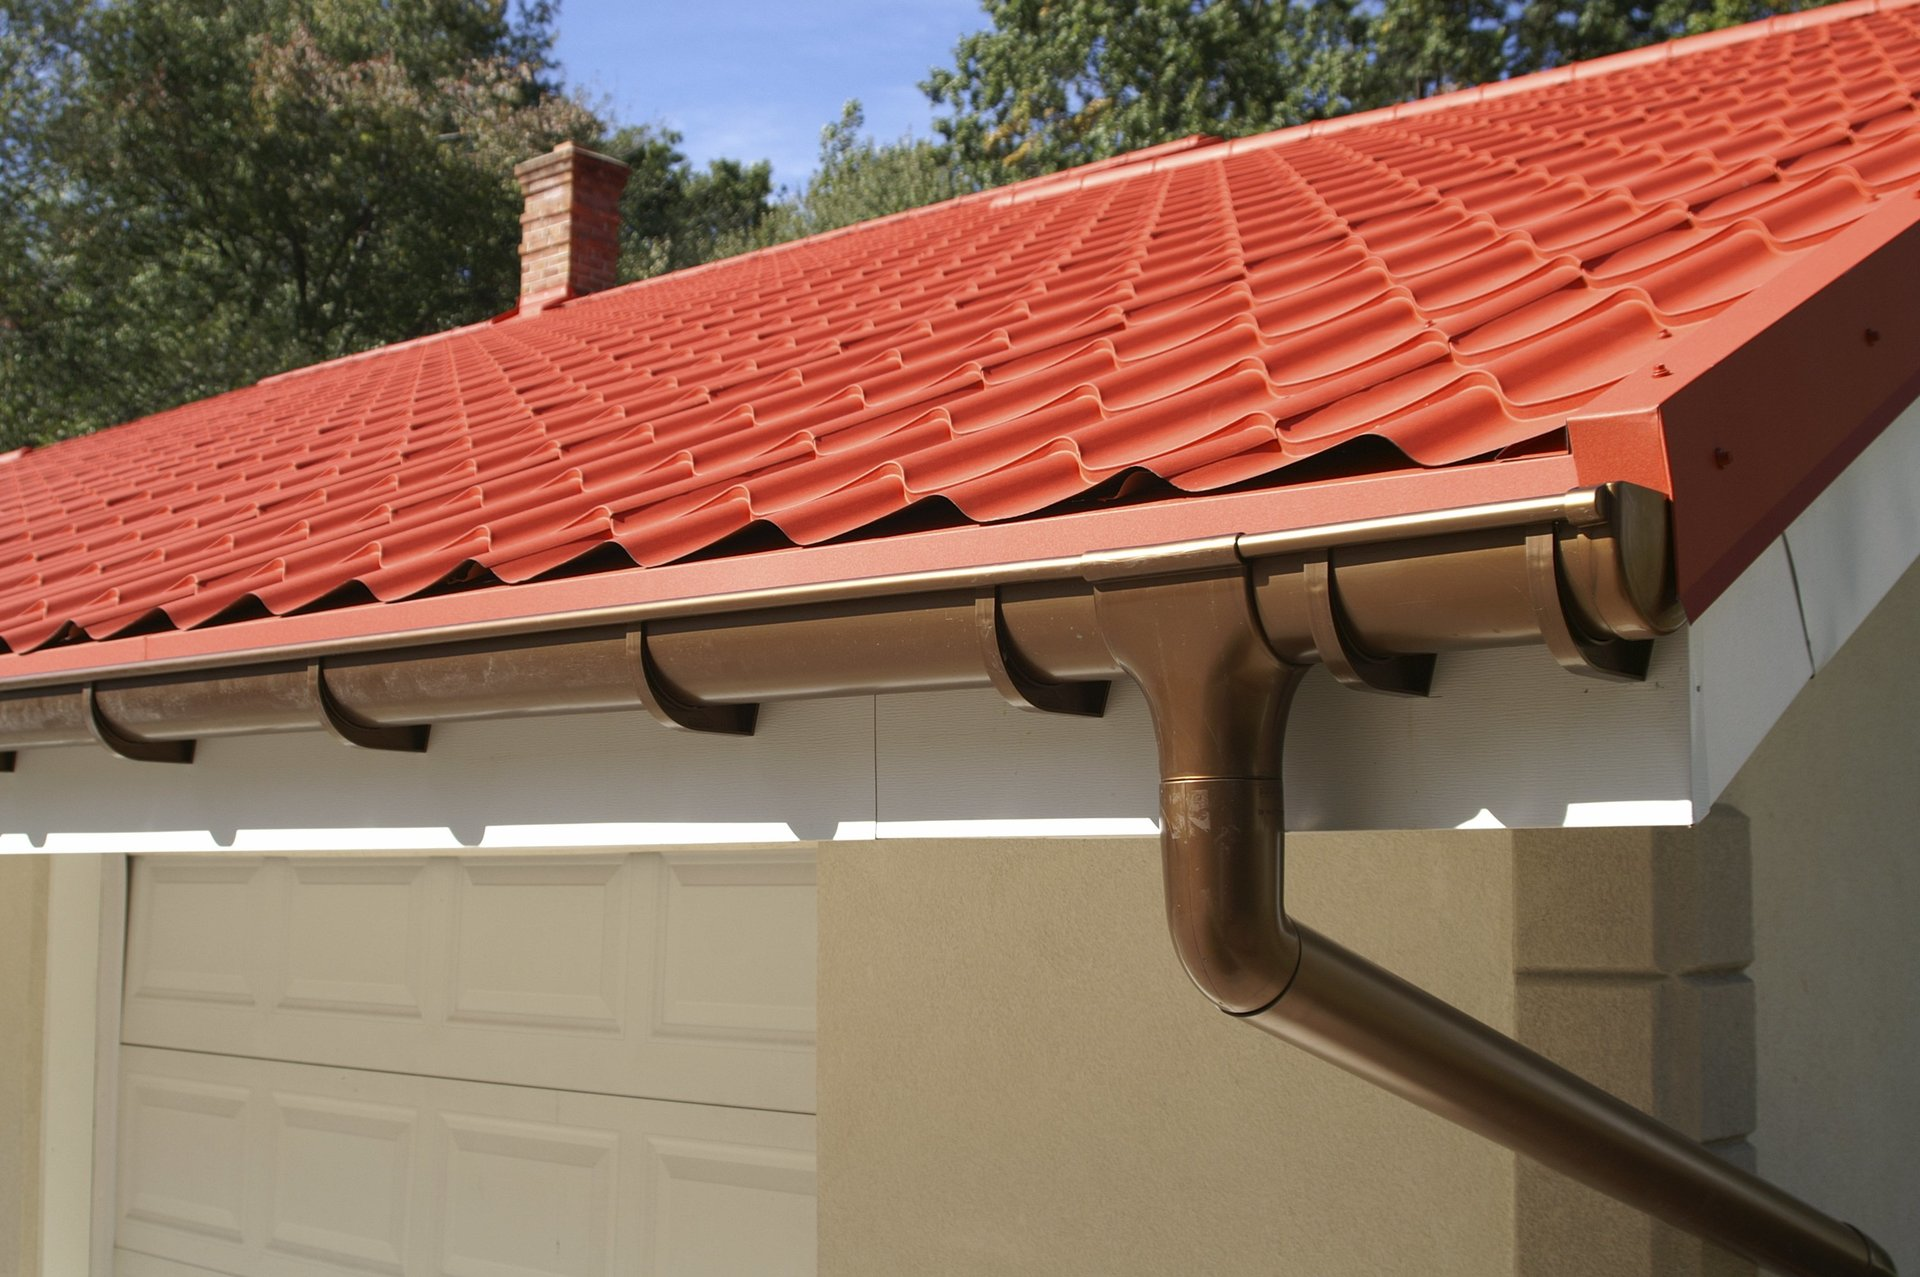 An image of brown plastic guttering